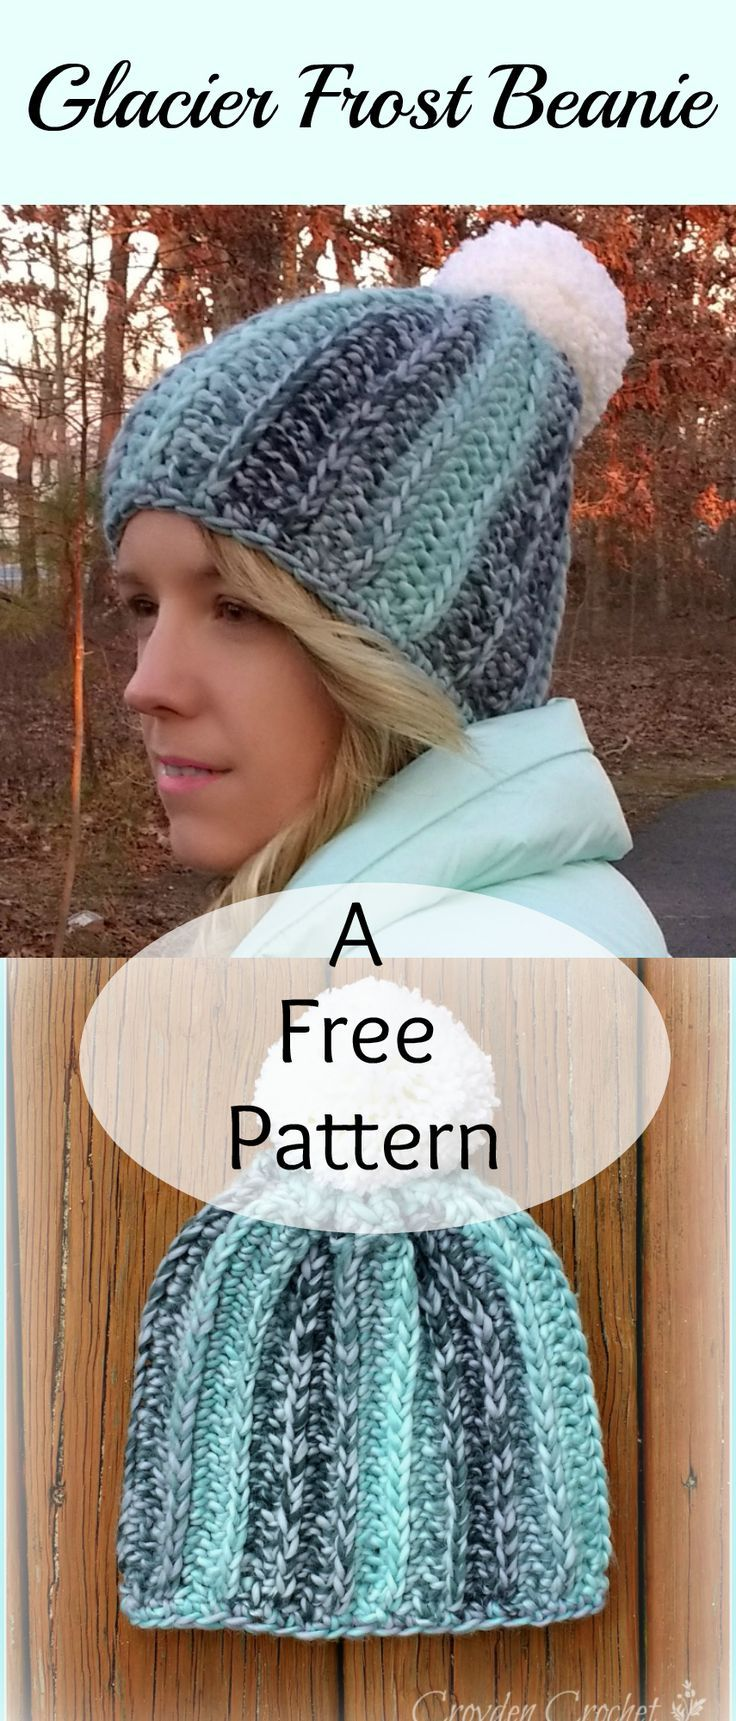 1066 best Crochet | Hats & Headbands images on Pinterest | Crochet ...